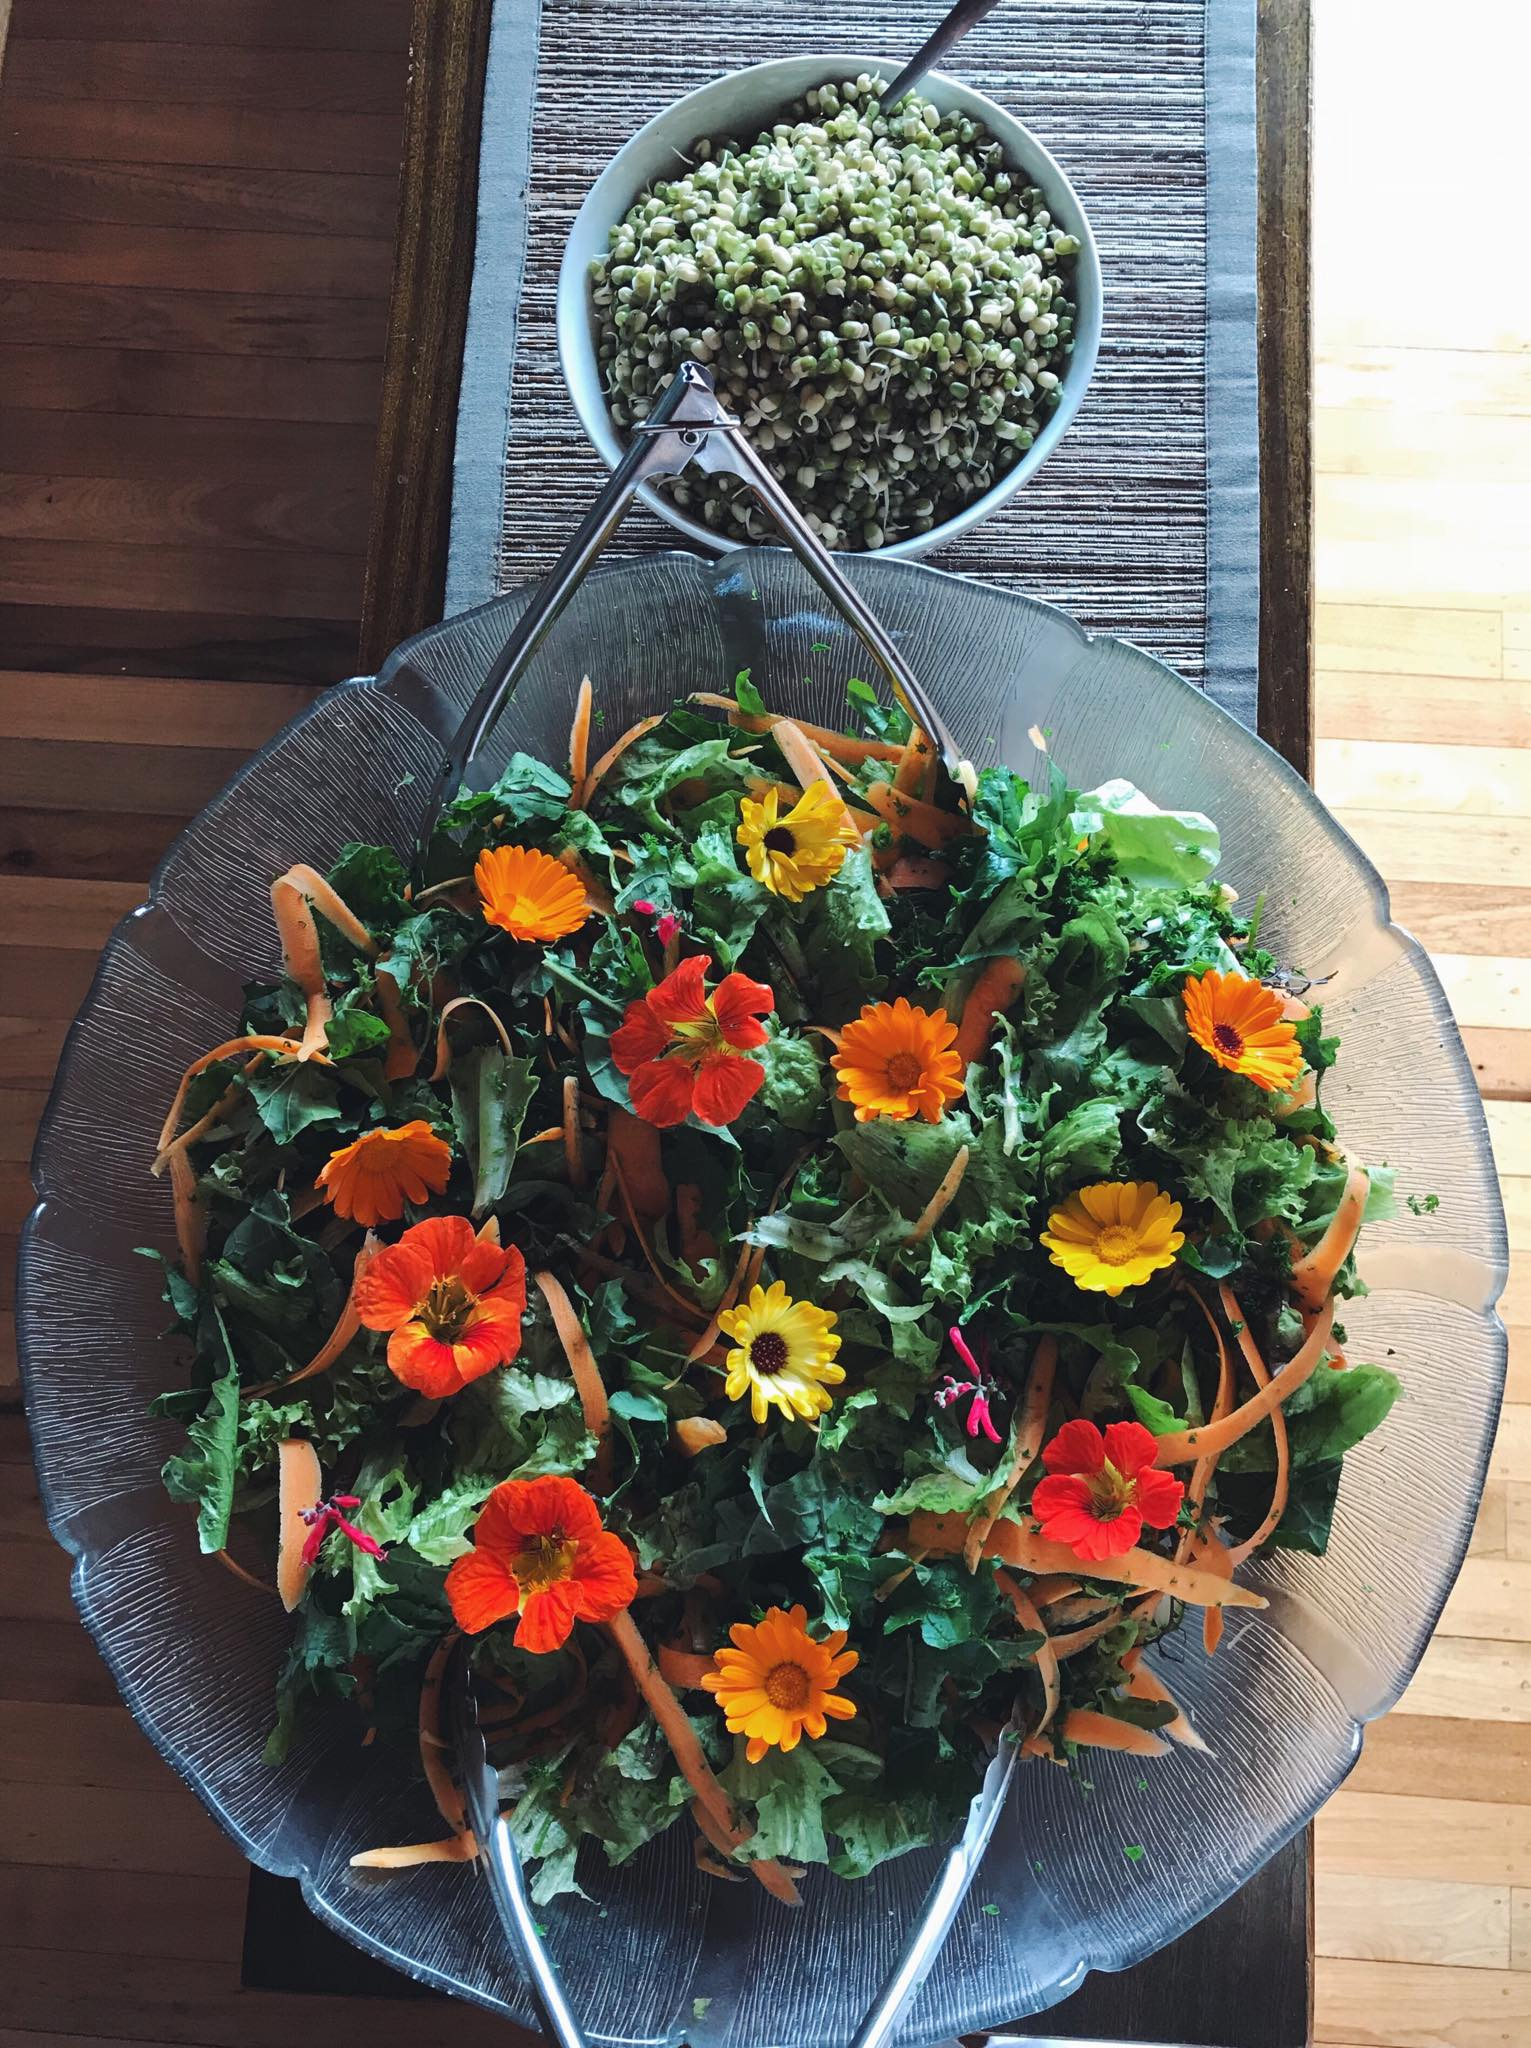 Freshly foraged garden salads - a typical addition at lunch and dinner